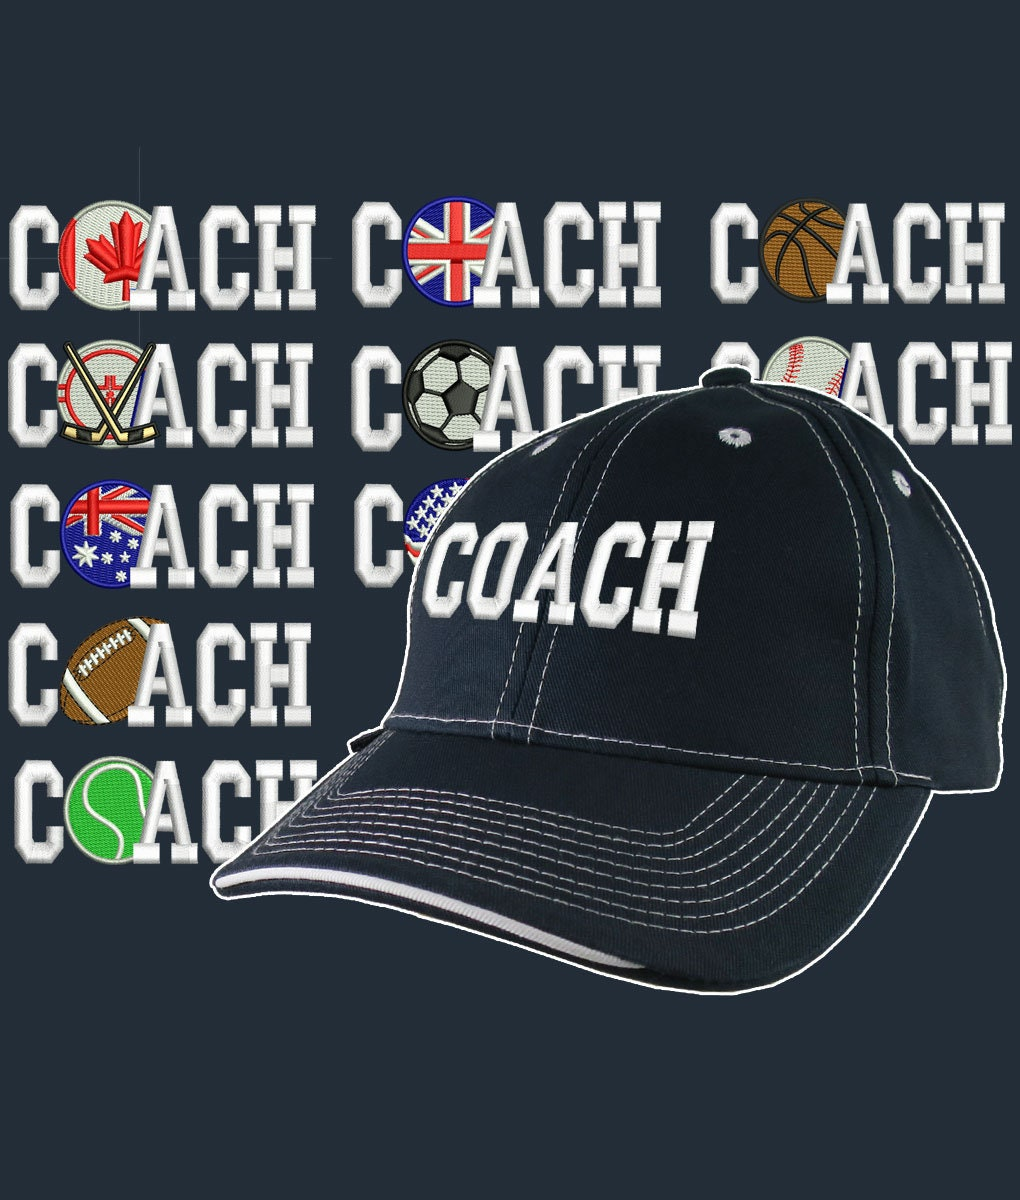 250c89c38 Custom Personalized Coach Embroidery on Adjustable Structured Navy ...